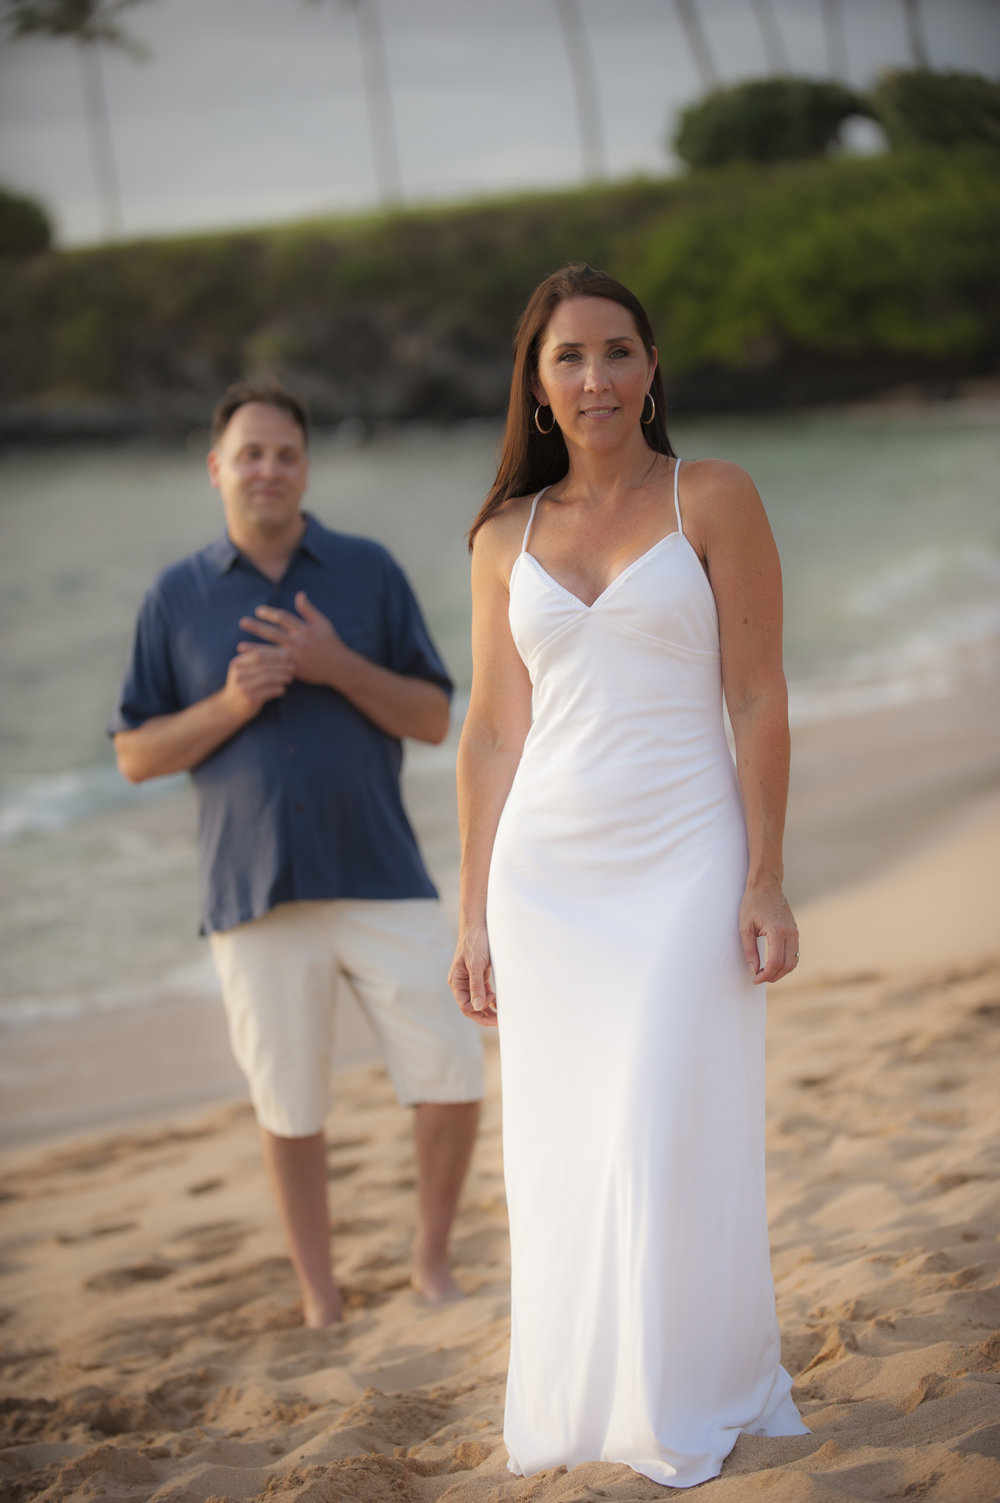 White jersey knit wedding dress in sleek body-hugging design for Hawaiian beach wedding